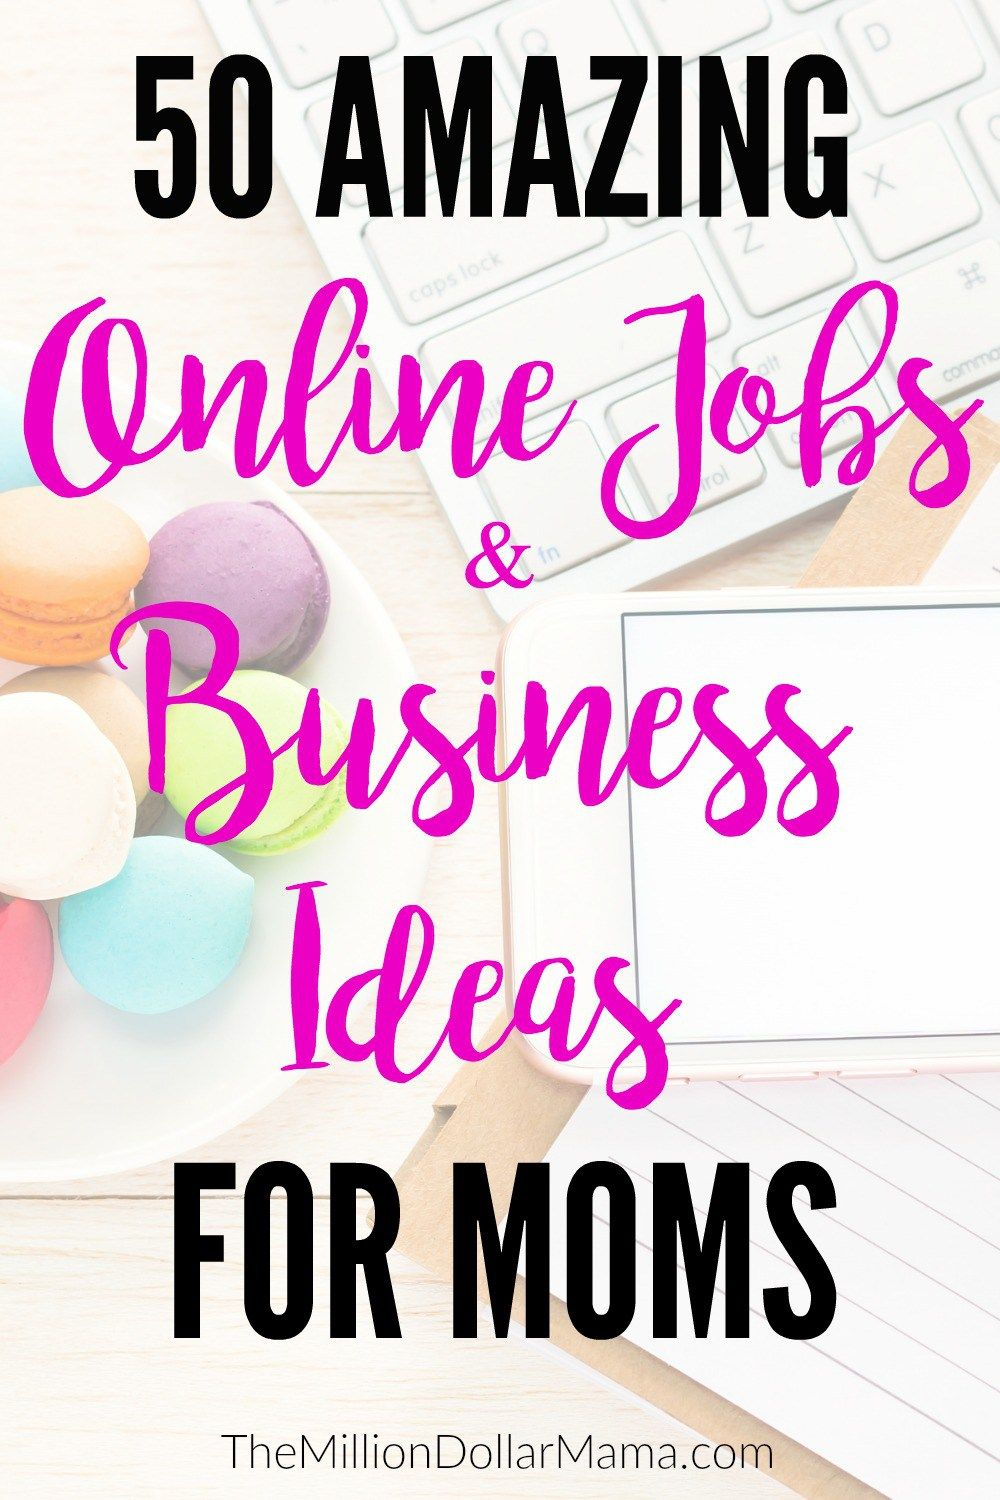 50 Online Jobs and Business Ideas for Moms | The Million Dollar Mama ...